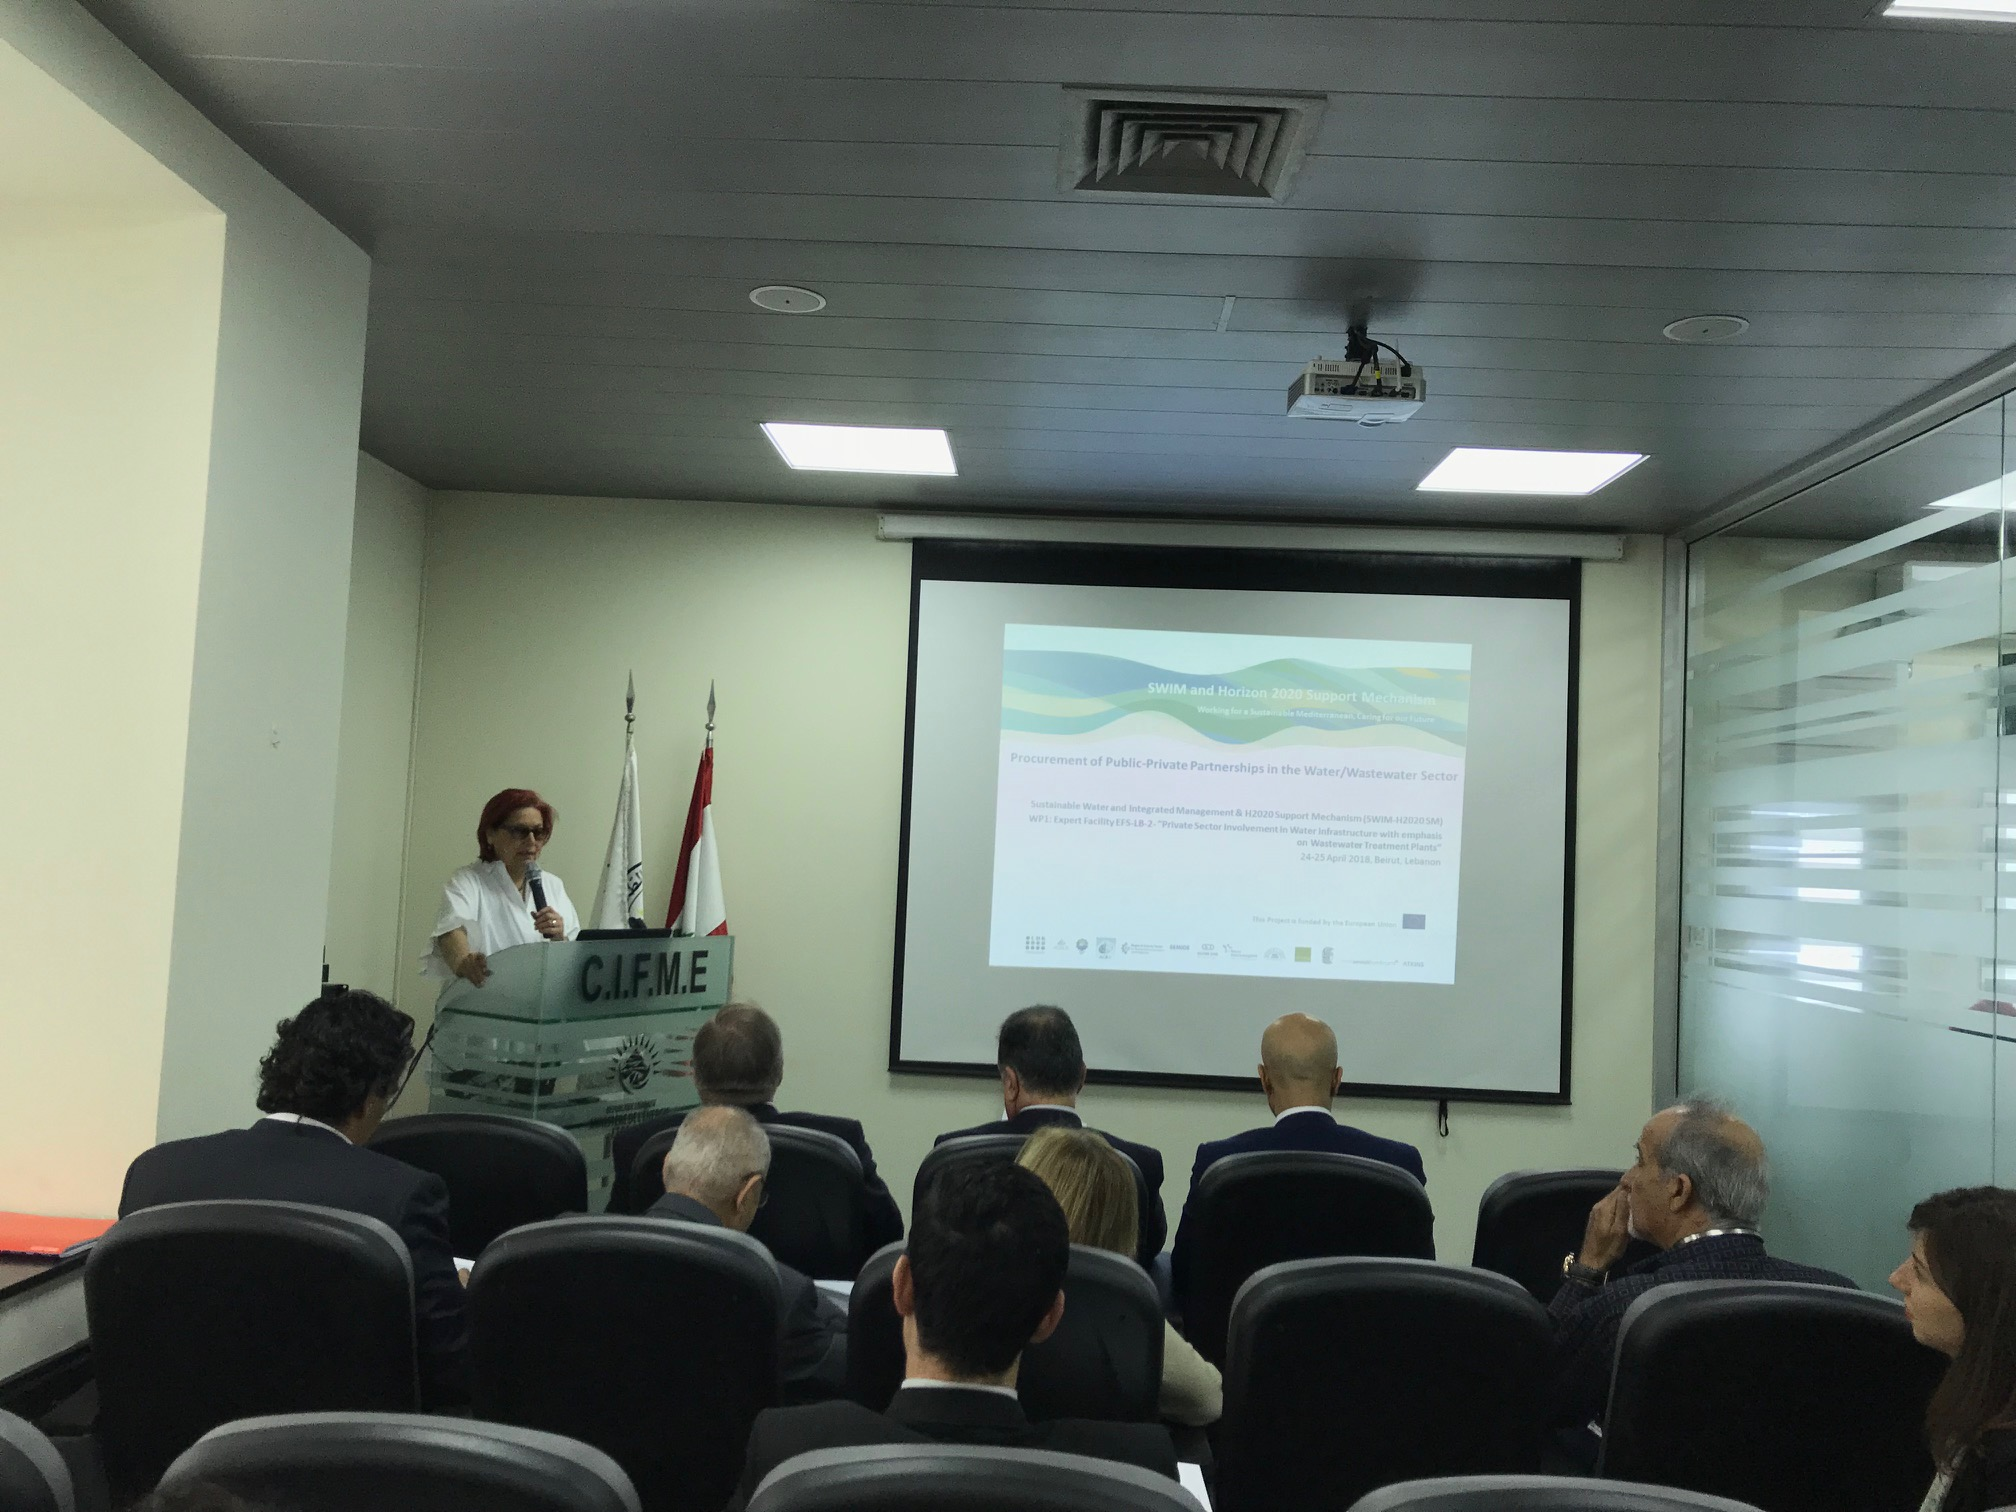 24-26 April 2018, Beirut, Lebanon – SWIM-H2020 SM Training on Procurement of Public-Private Partnerships in the Water/Wastewater Sector